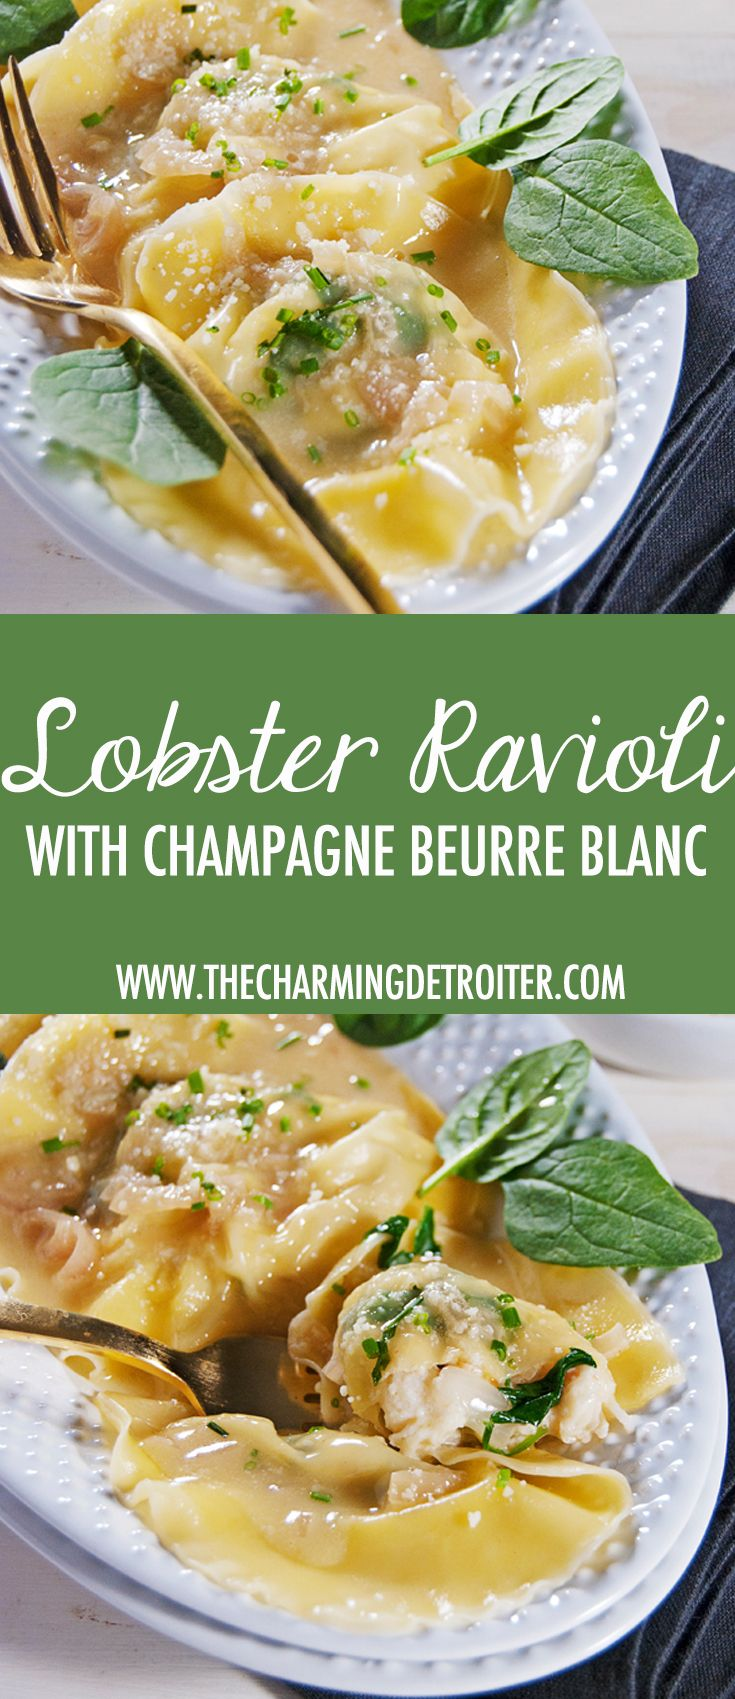 These plump ravioli are filled with tasty lobster and mascarpone and finished in a delectable and rich champagne beurre blanc sauce.